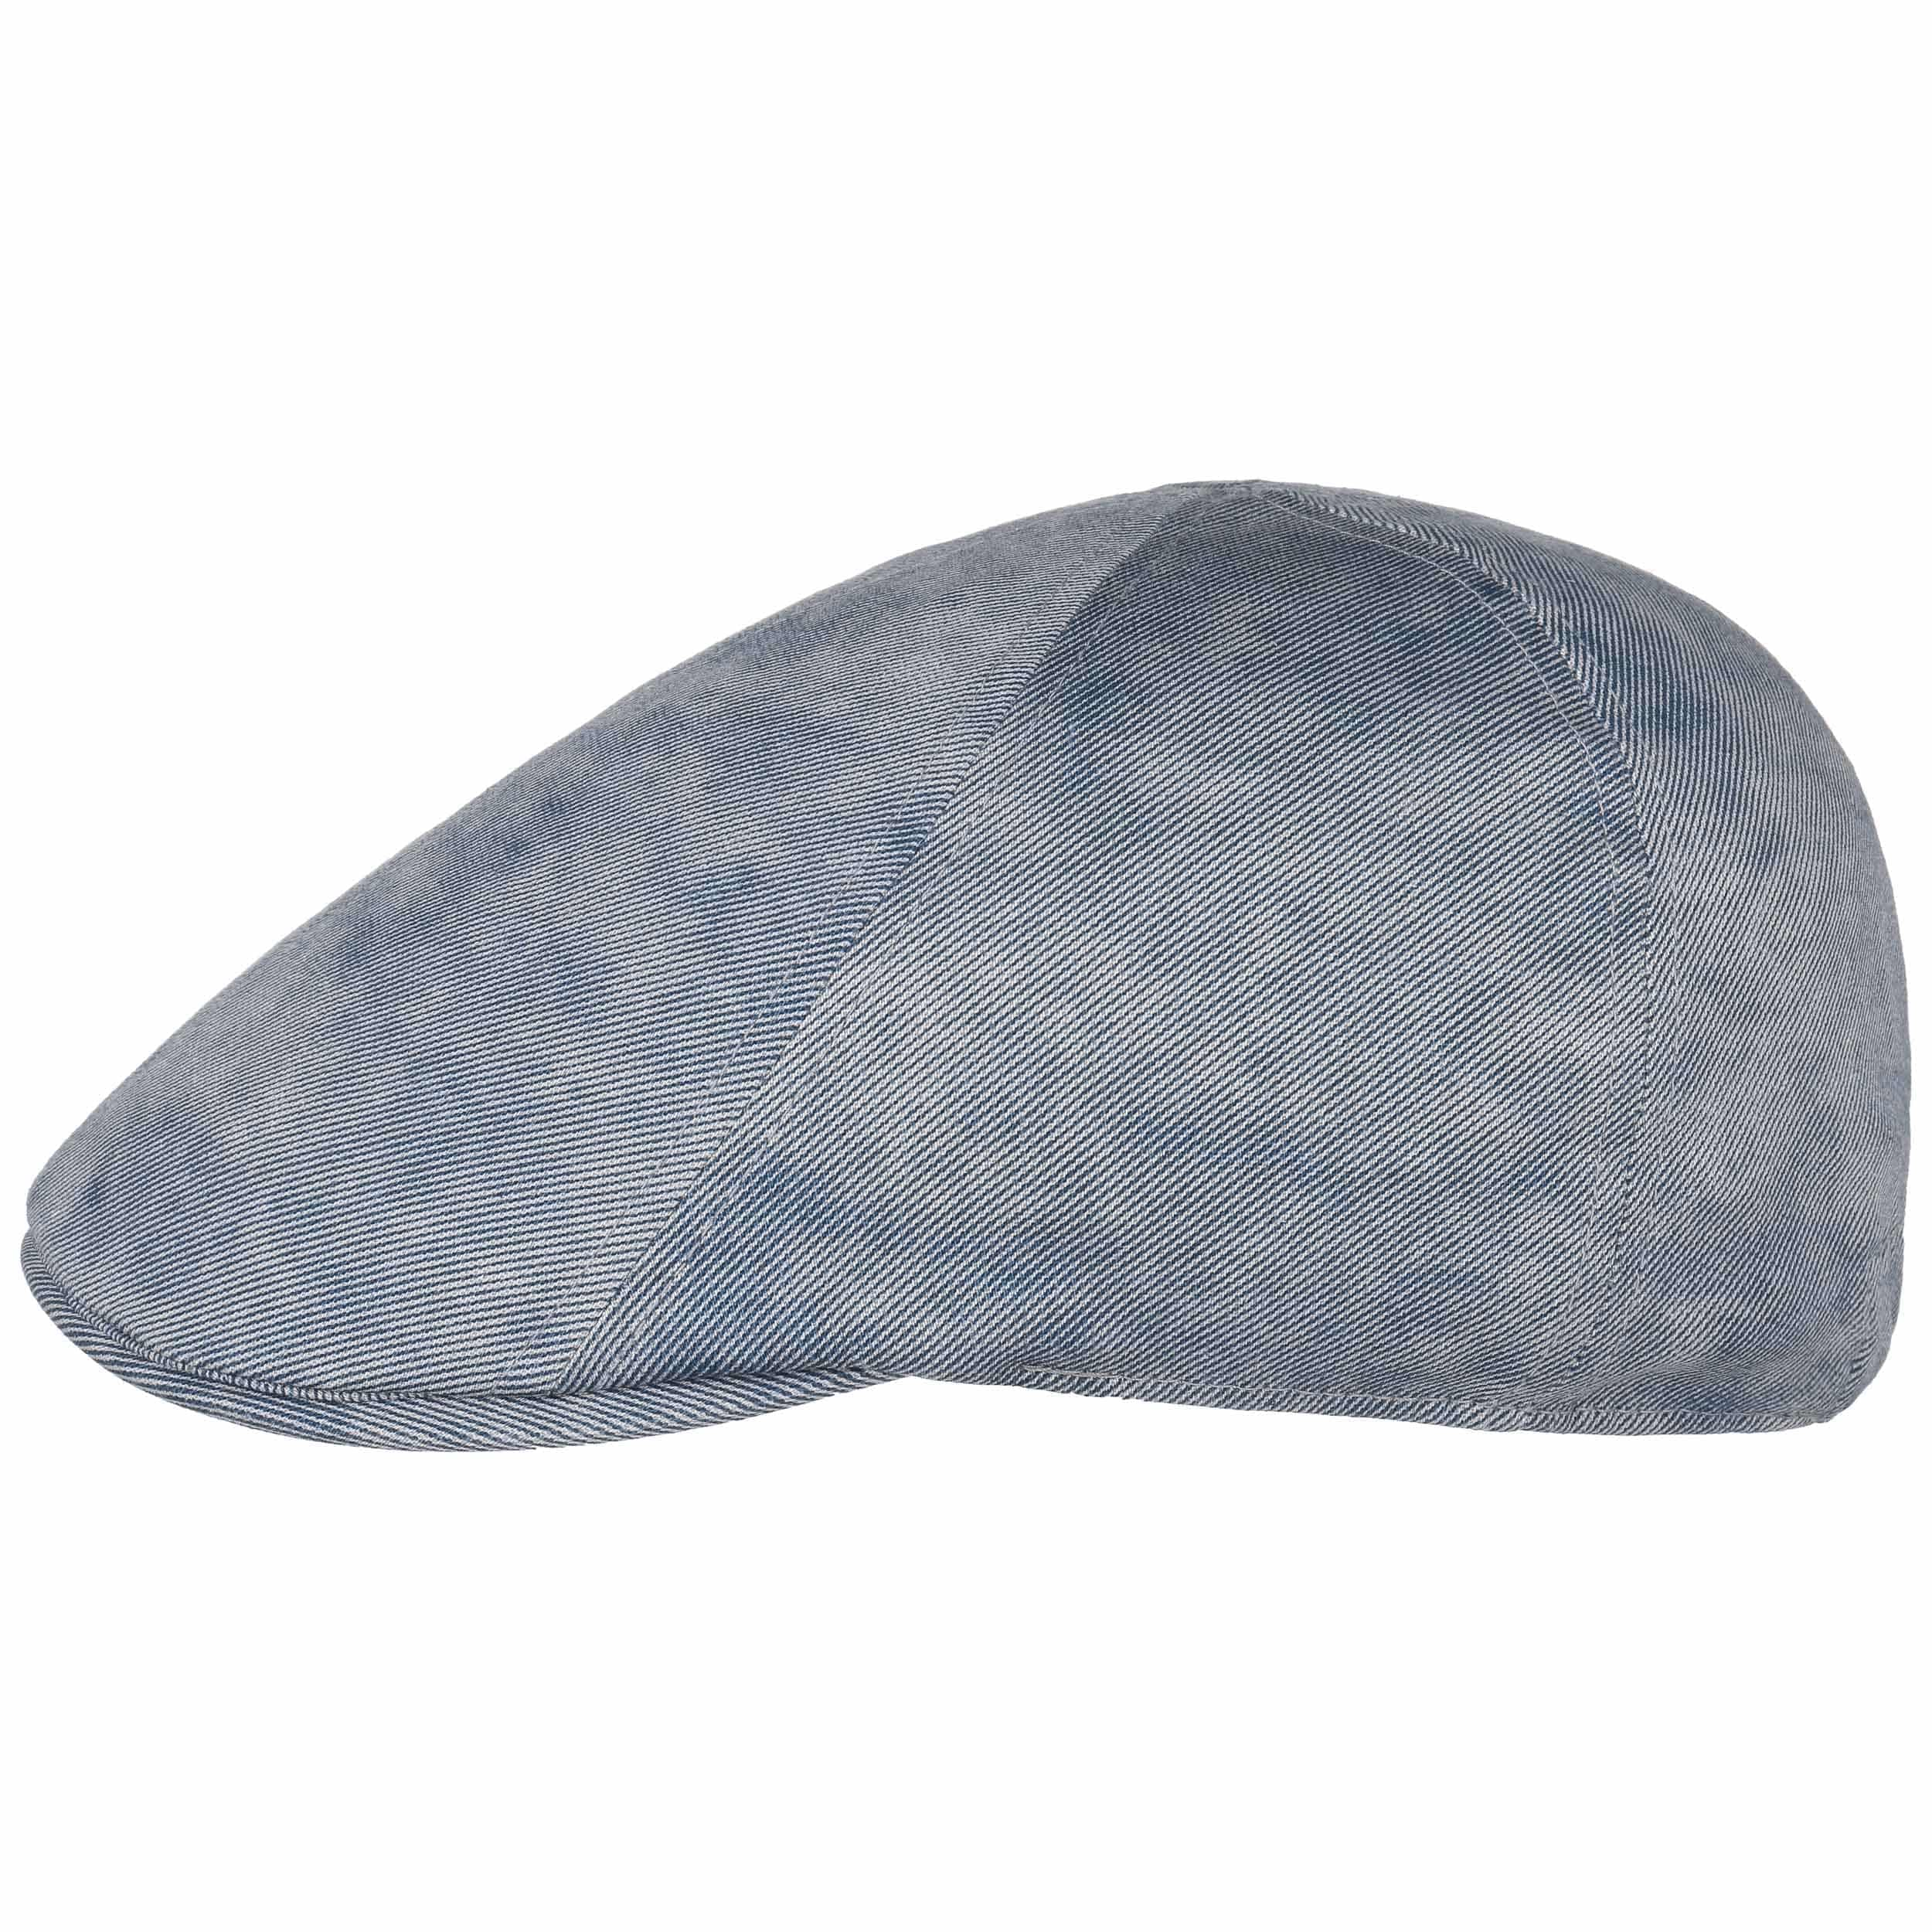 ... Used Denim Mélange Flat Cap by Lipodo - blue-mottled 4 ec3889e3755